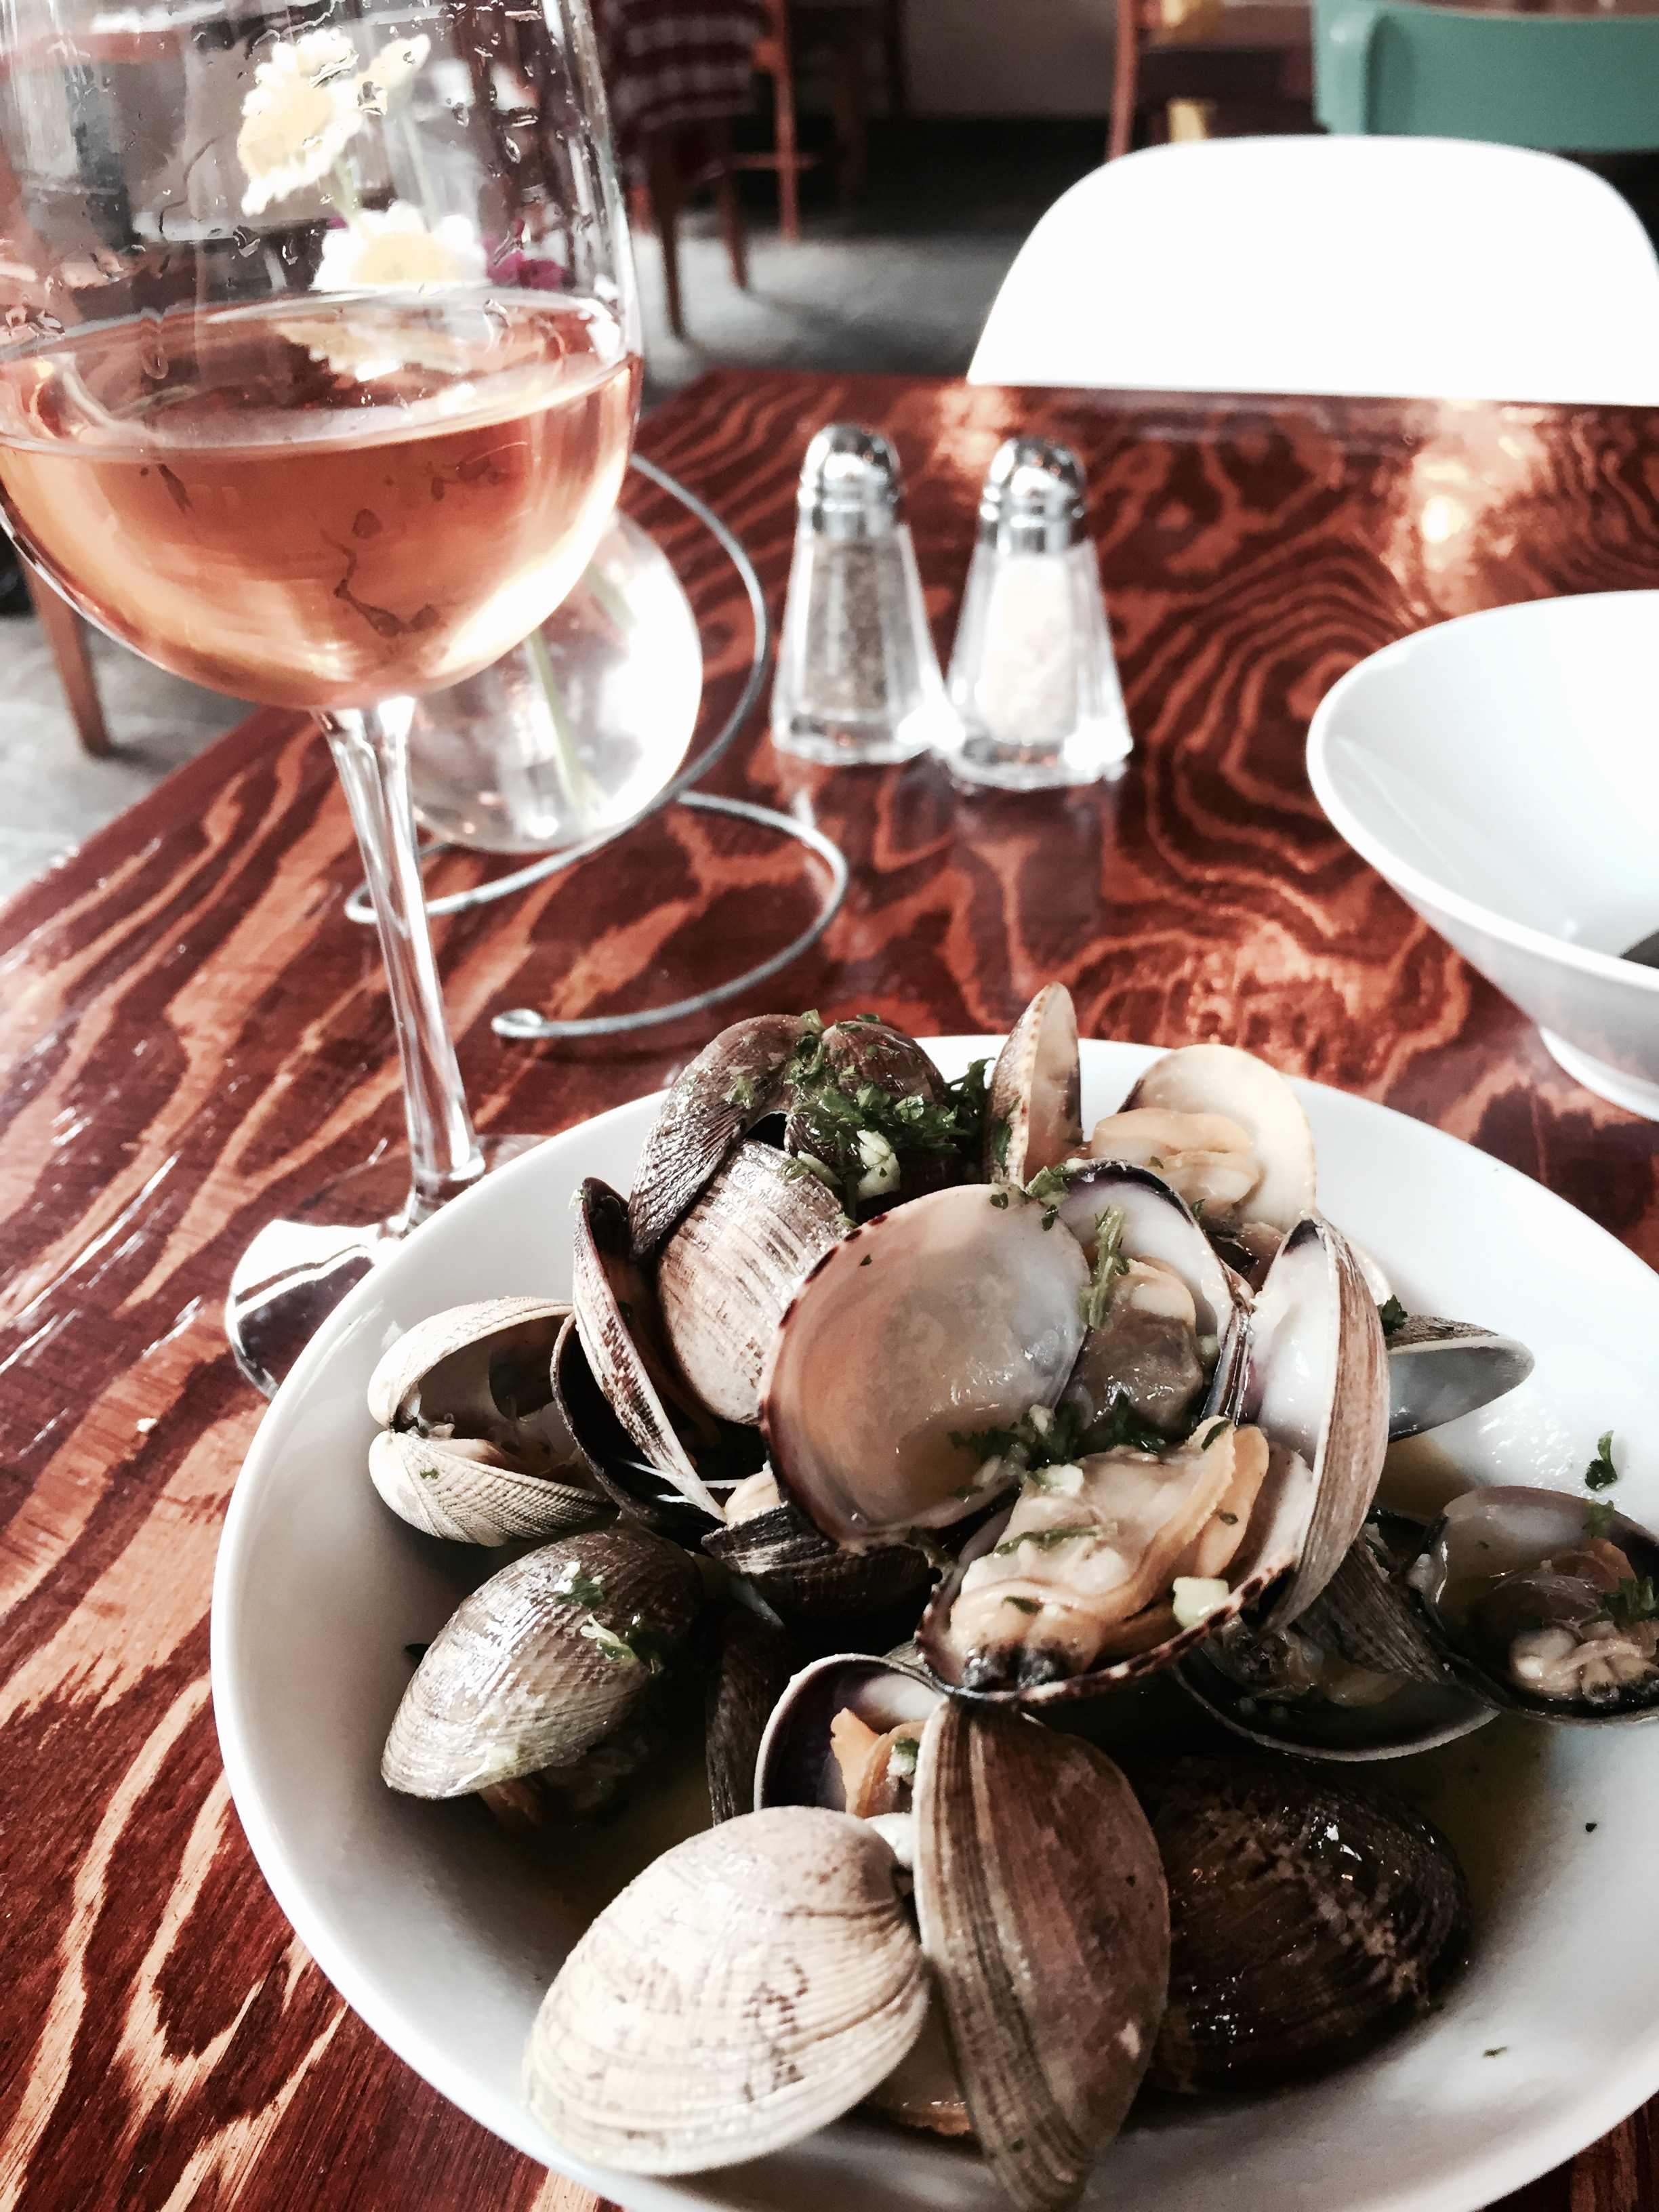 Clams in white wine and butter at Rustique. Pretty basic French bistro fare - done to perfection and paired with a glass of Nichol Pinot Gris. Lovely minerality that goes well with shellfish.